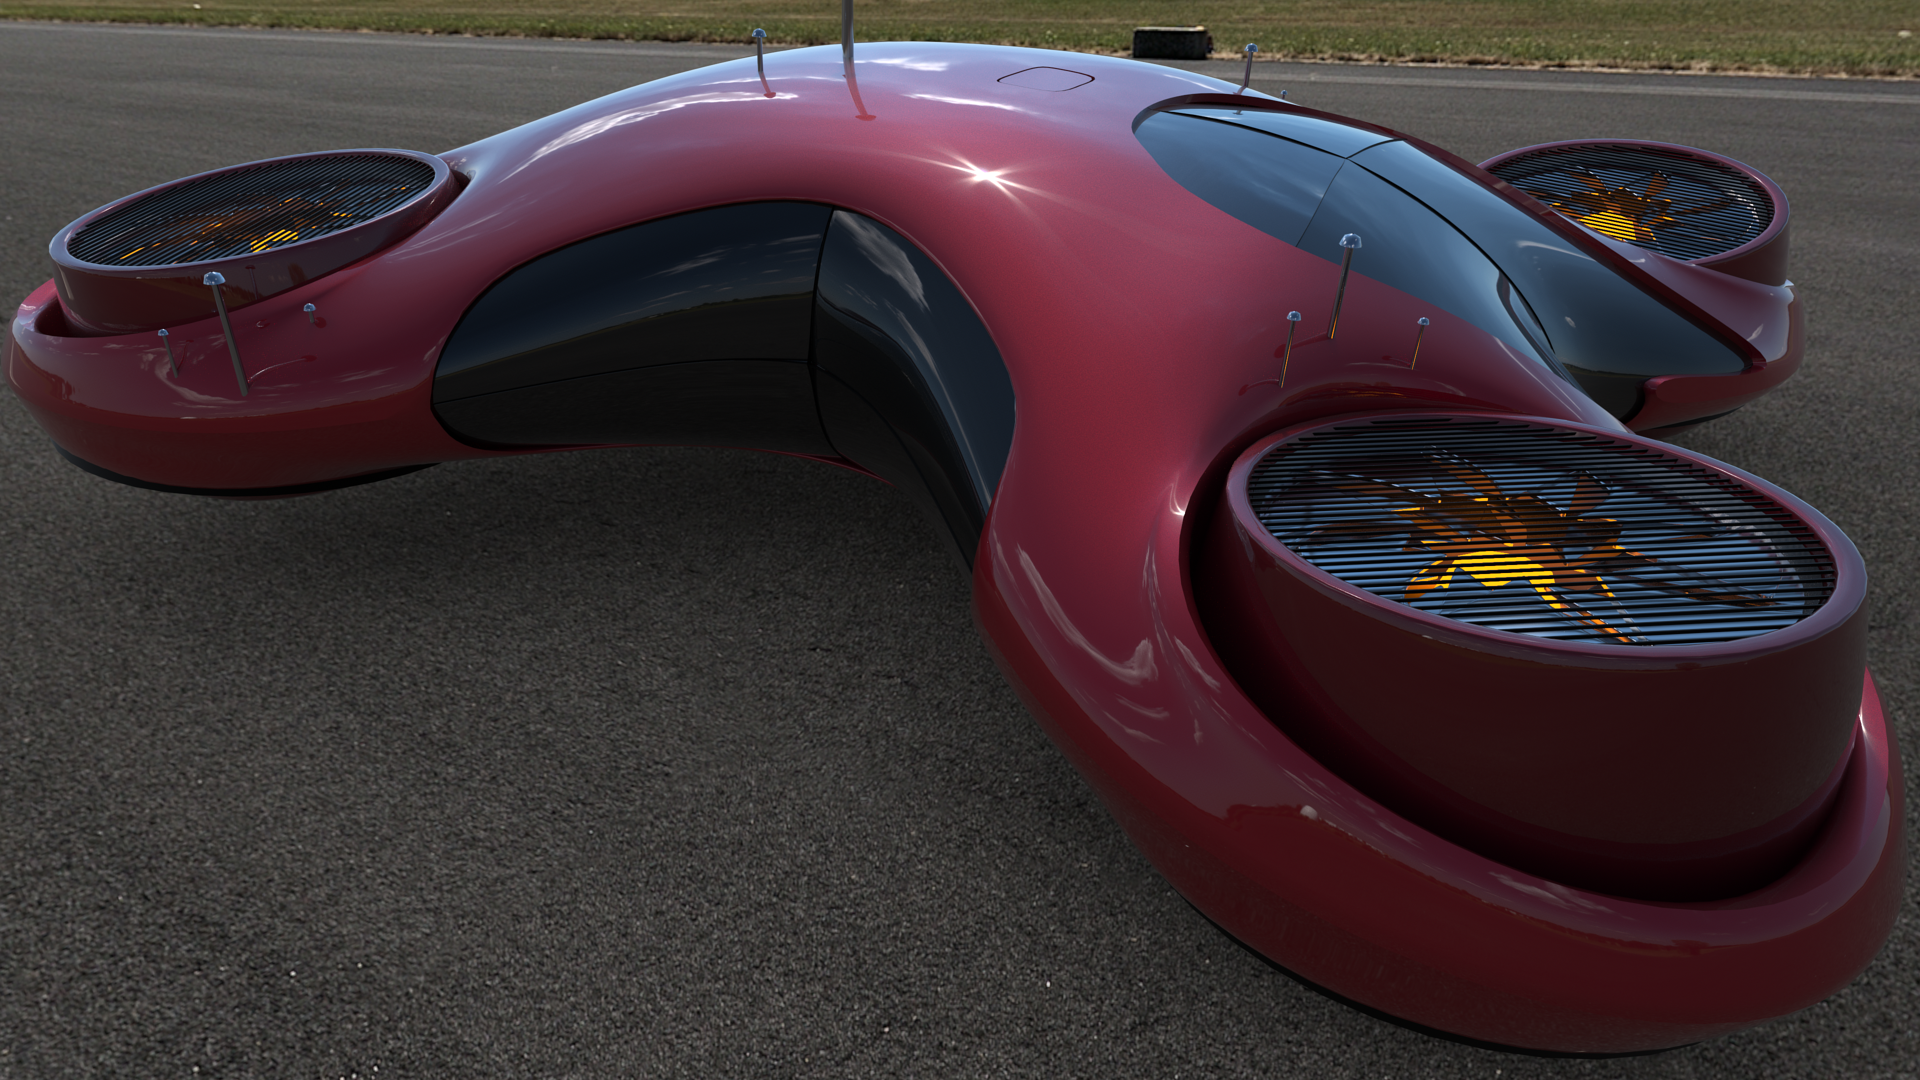 Drone Car 1080p By Hermond